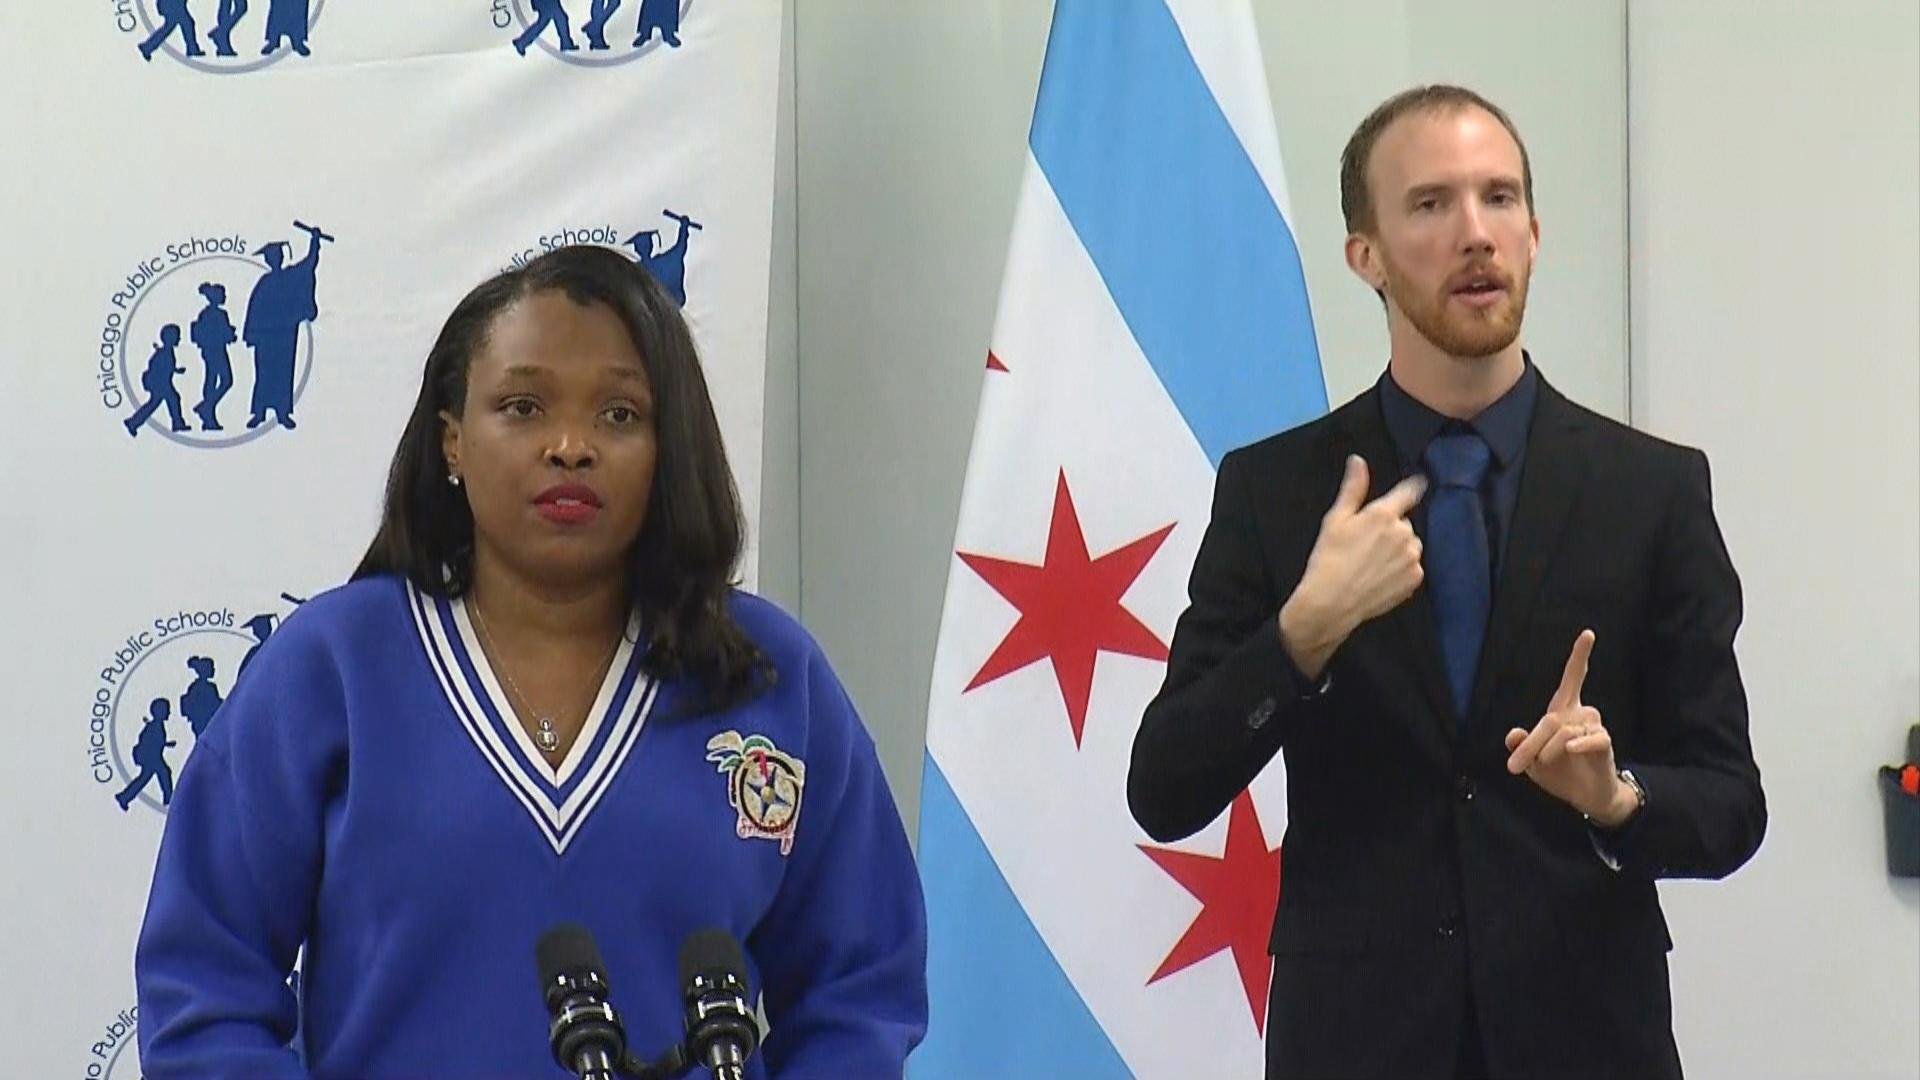 CPS CEO Janice Jackson speaks at a news conference Tuesday, Jan. 26, 2021 amid negotiations between the district and Chicago Public Schools. (WTTW News)